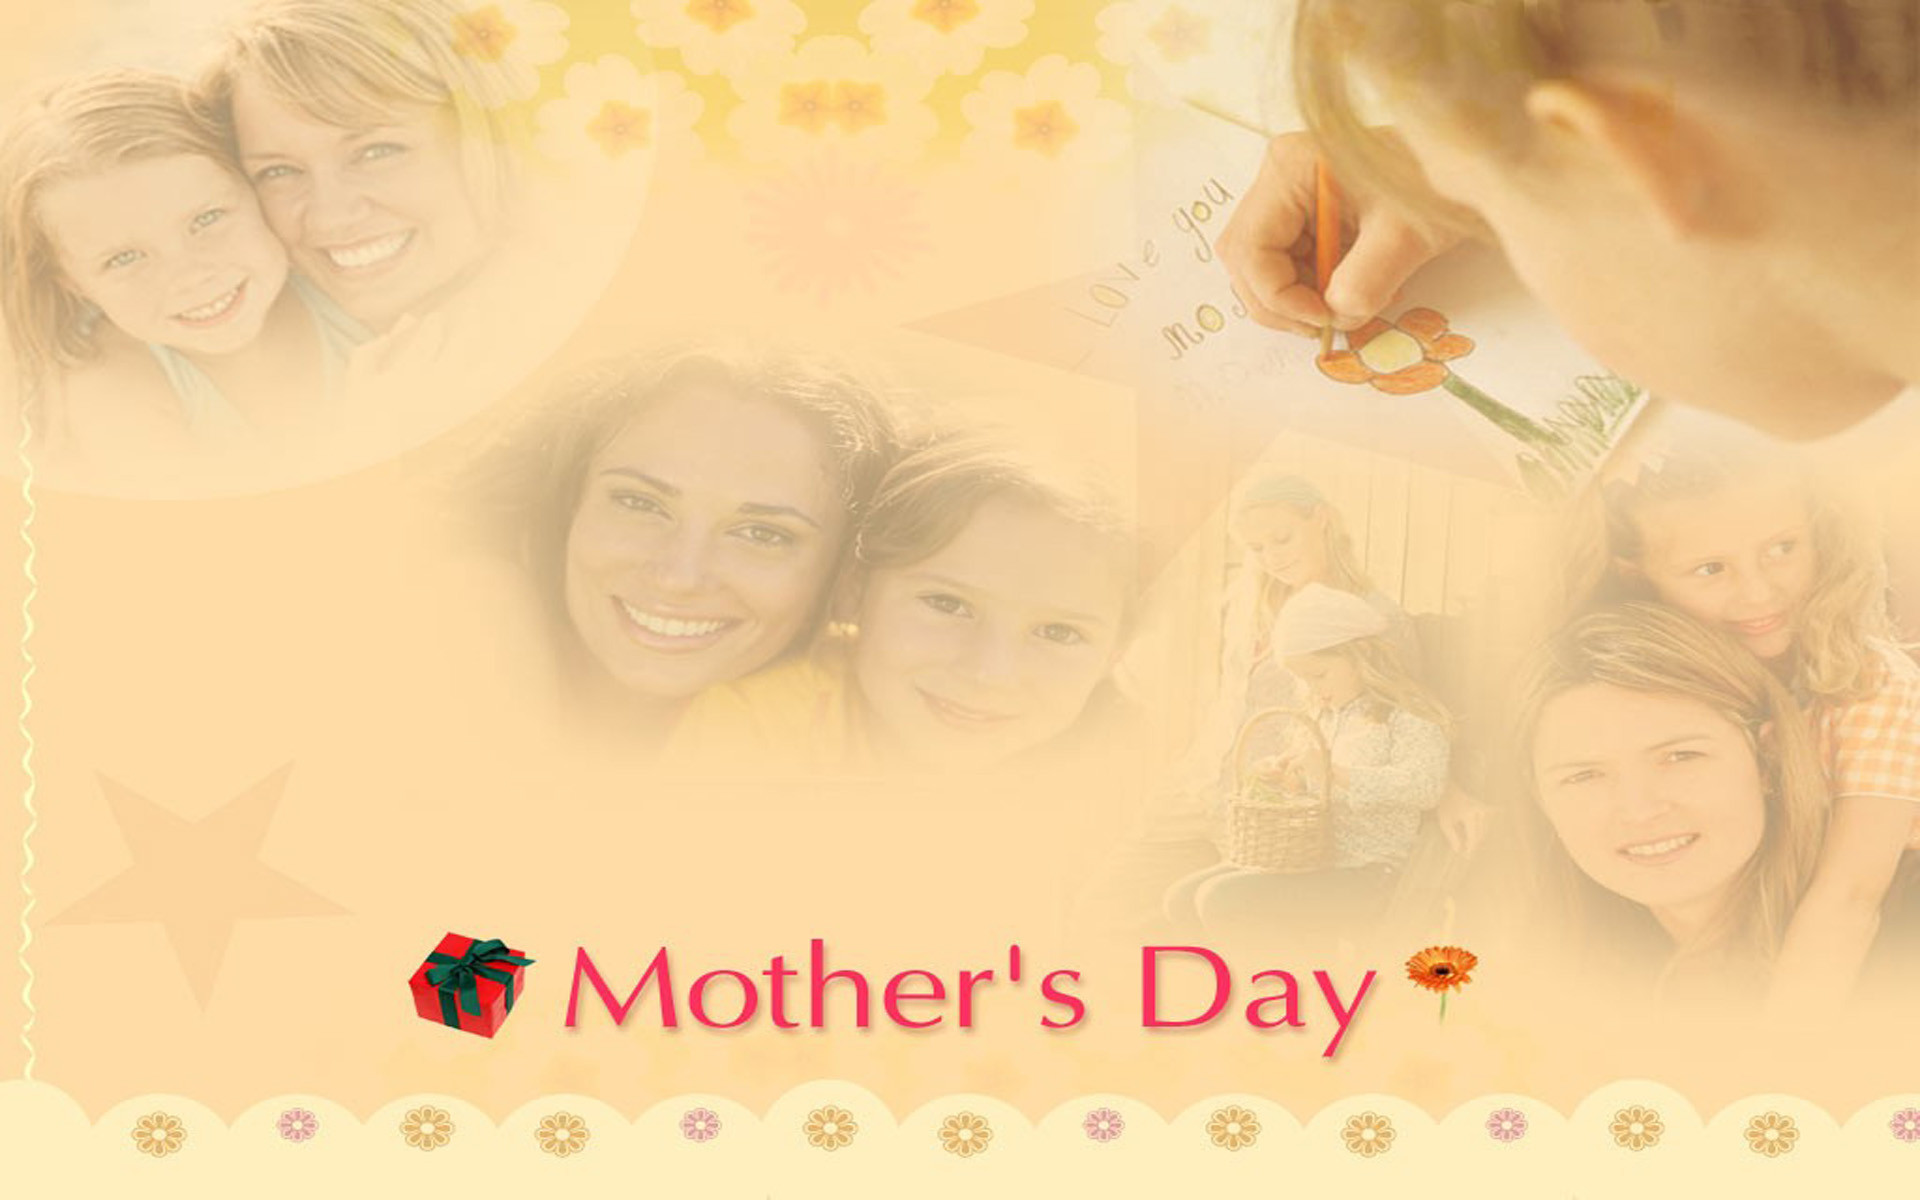 Res: 1920x1200, Mother's Day background Images | UK-USAFESTIVALS